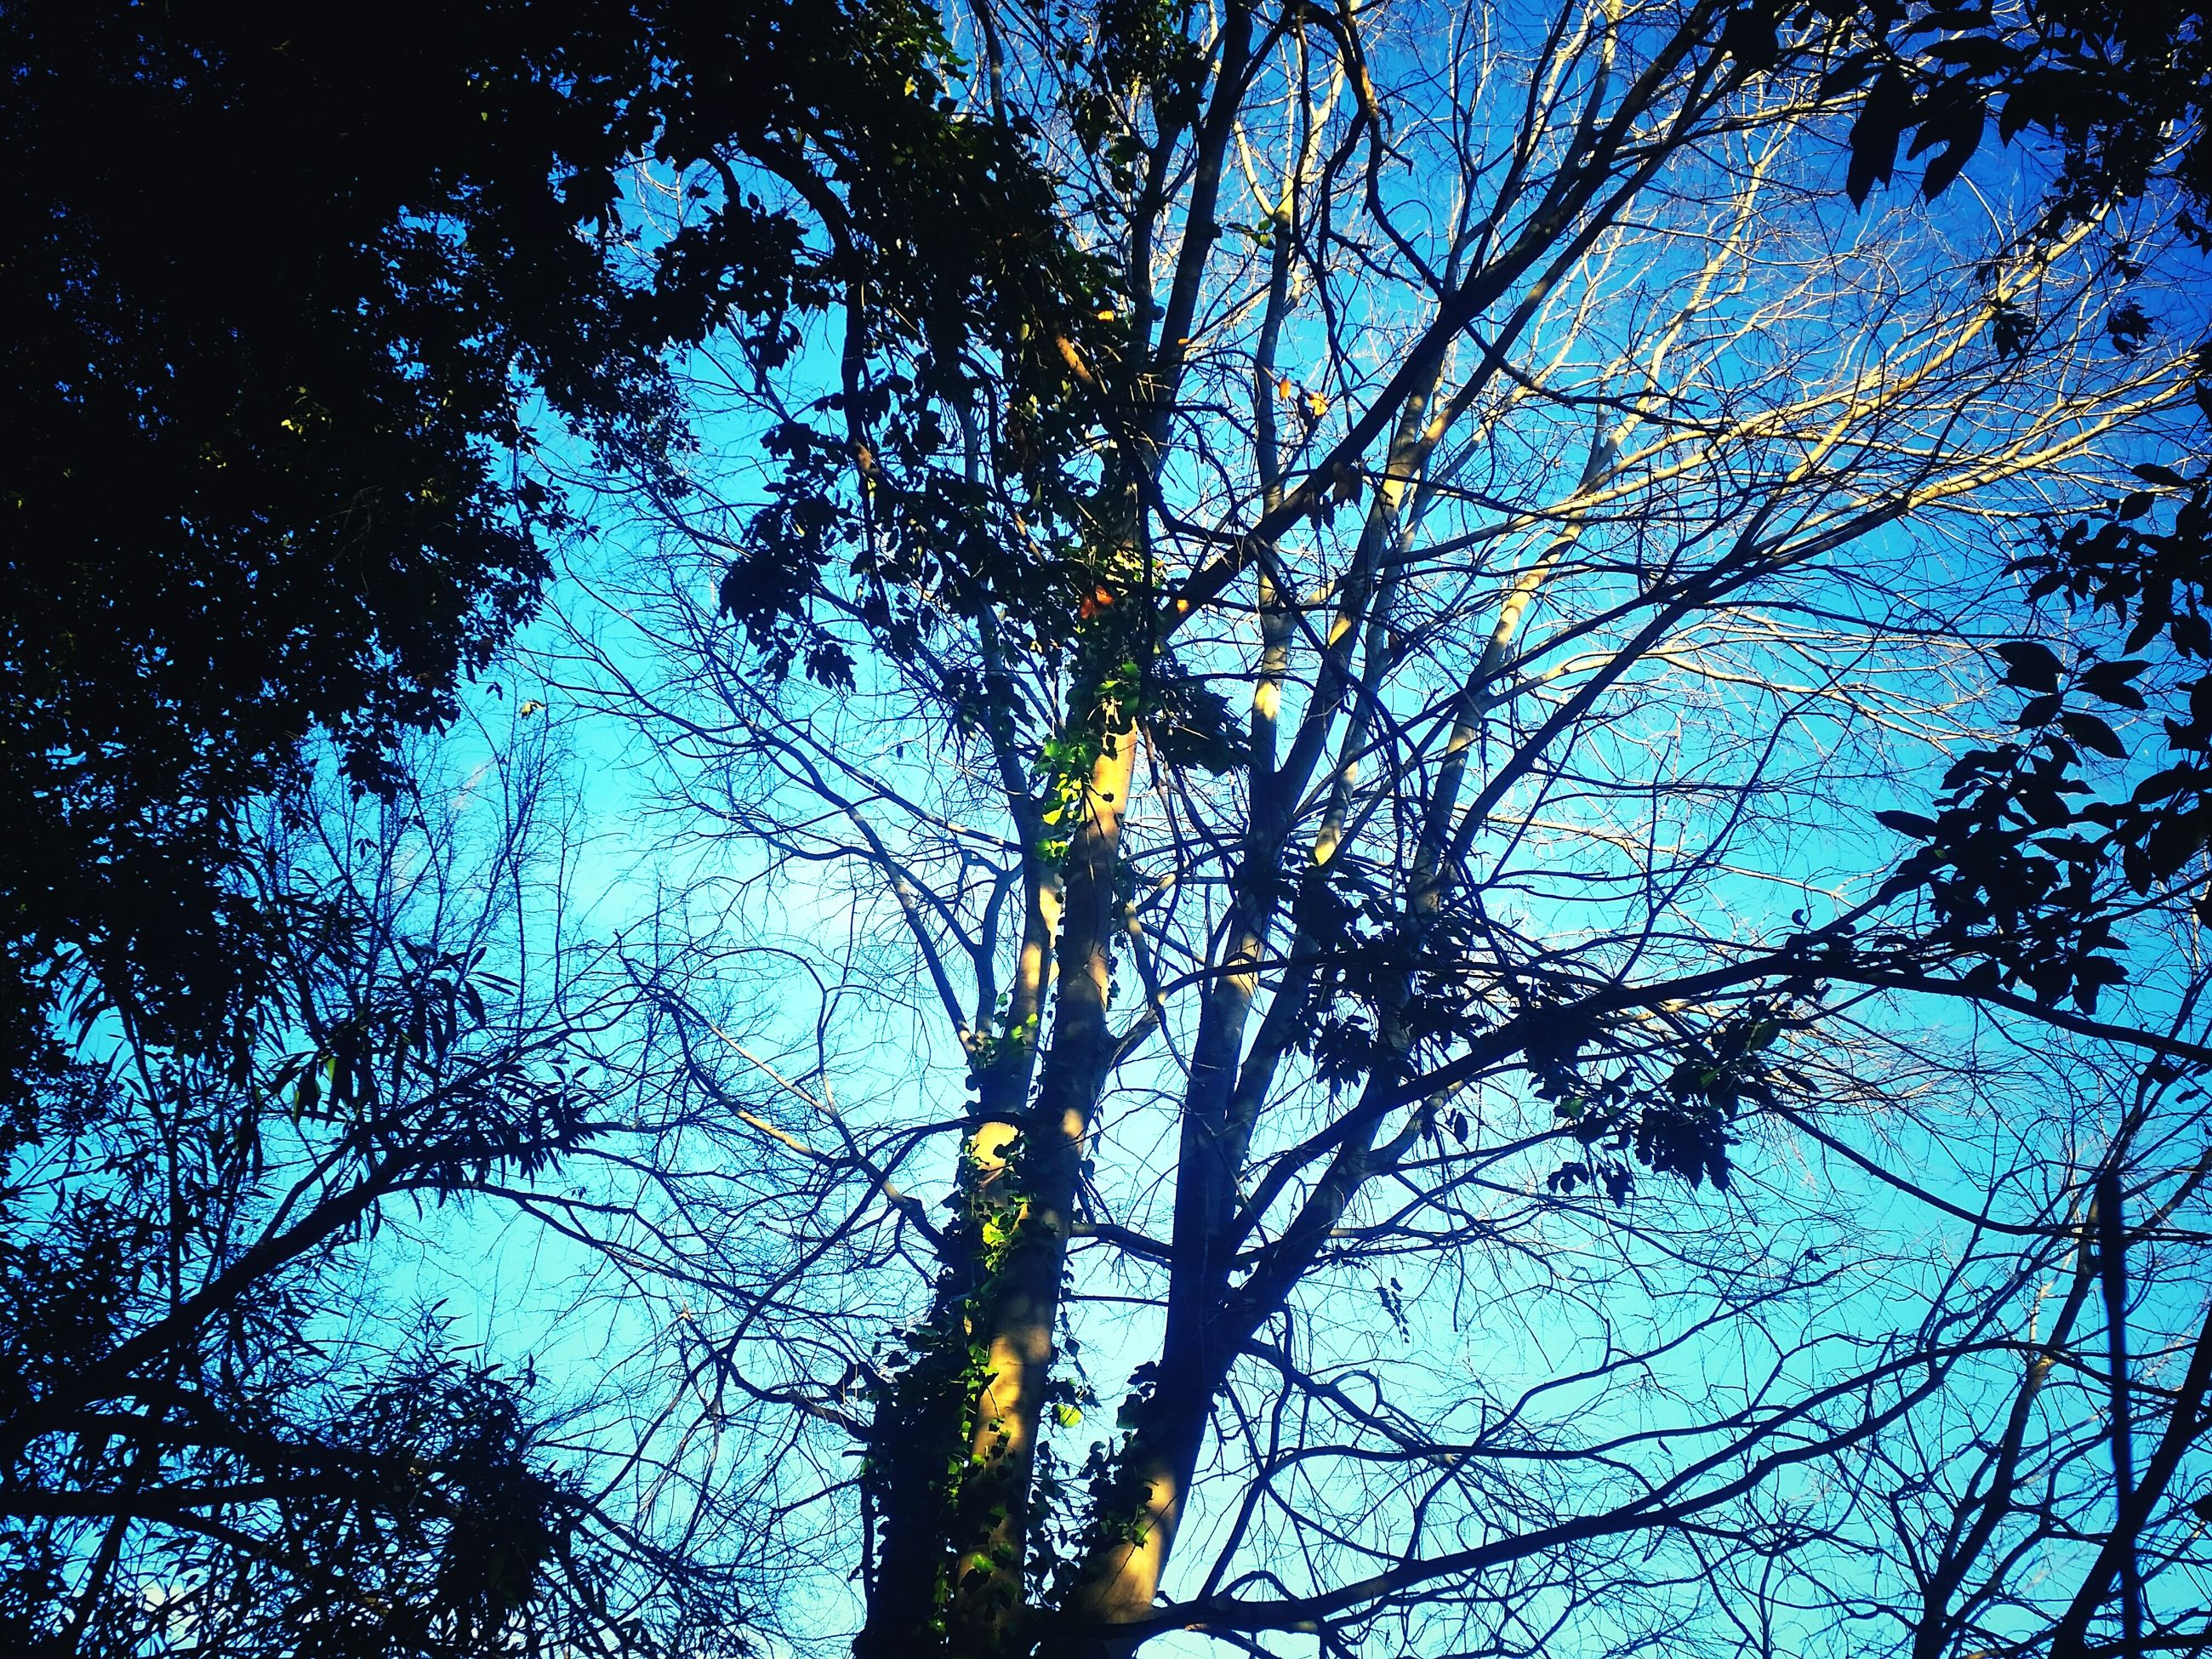 low angle view, tree, branch, sky, growth, nature, blue, tranquility, beauty in nature, bare tree, silhouette, tree trunk, outdoors, scenics, no people, clear sky, day, backgrounds, sunlight, high section